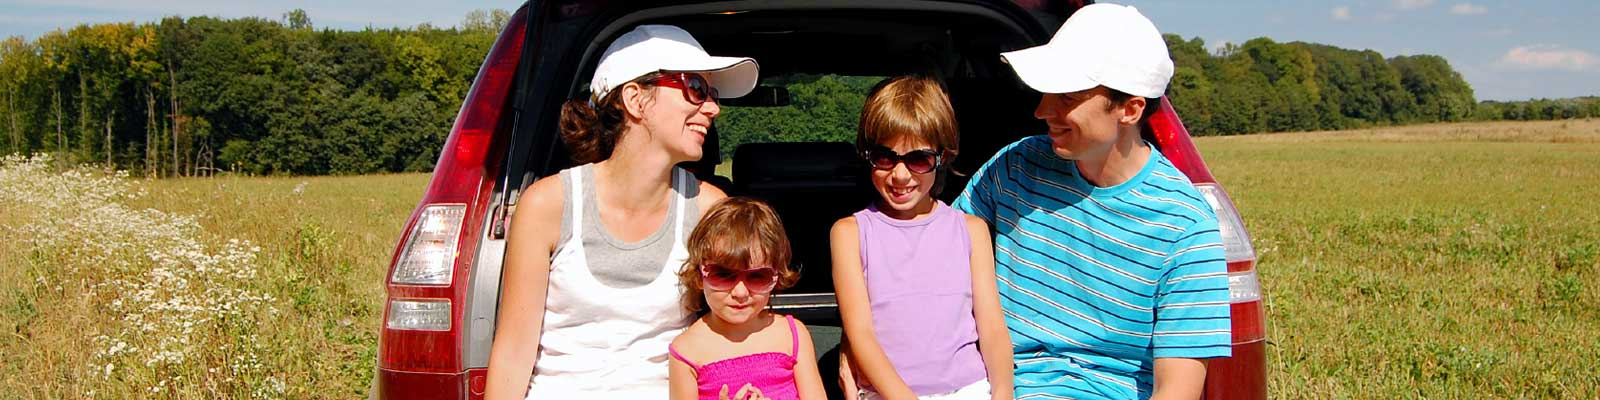 Family Sitting on the back of the car